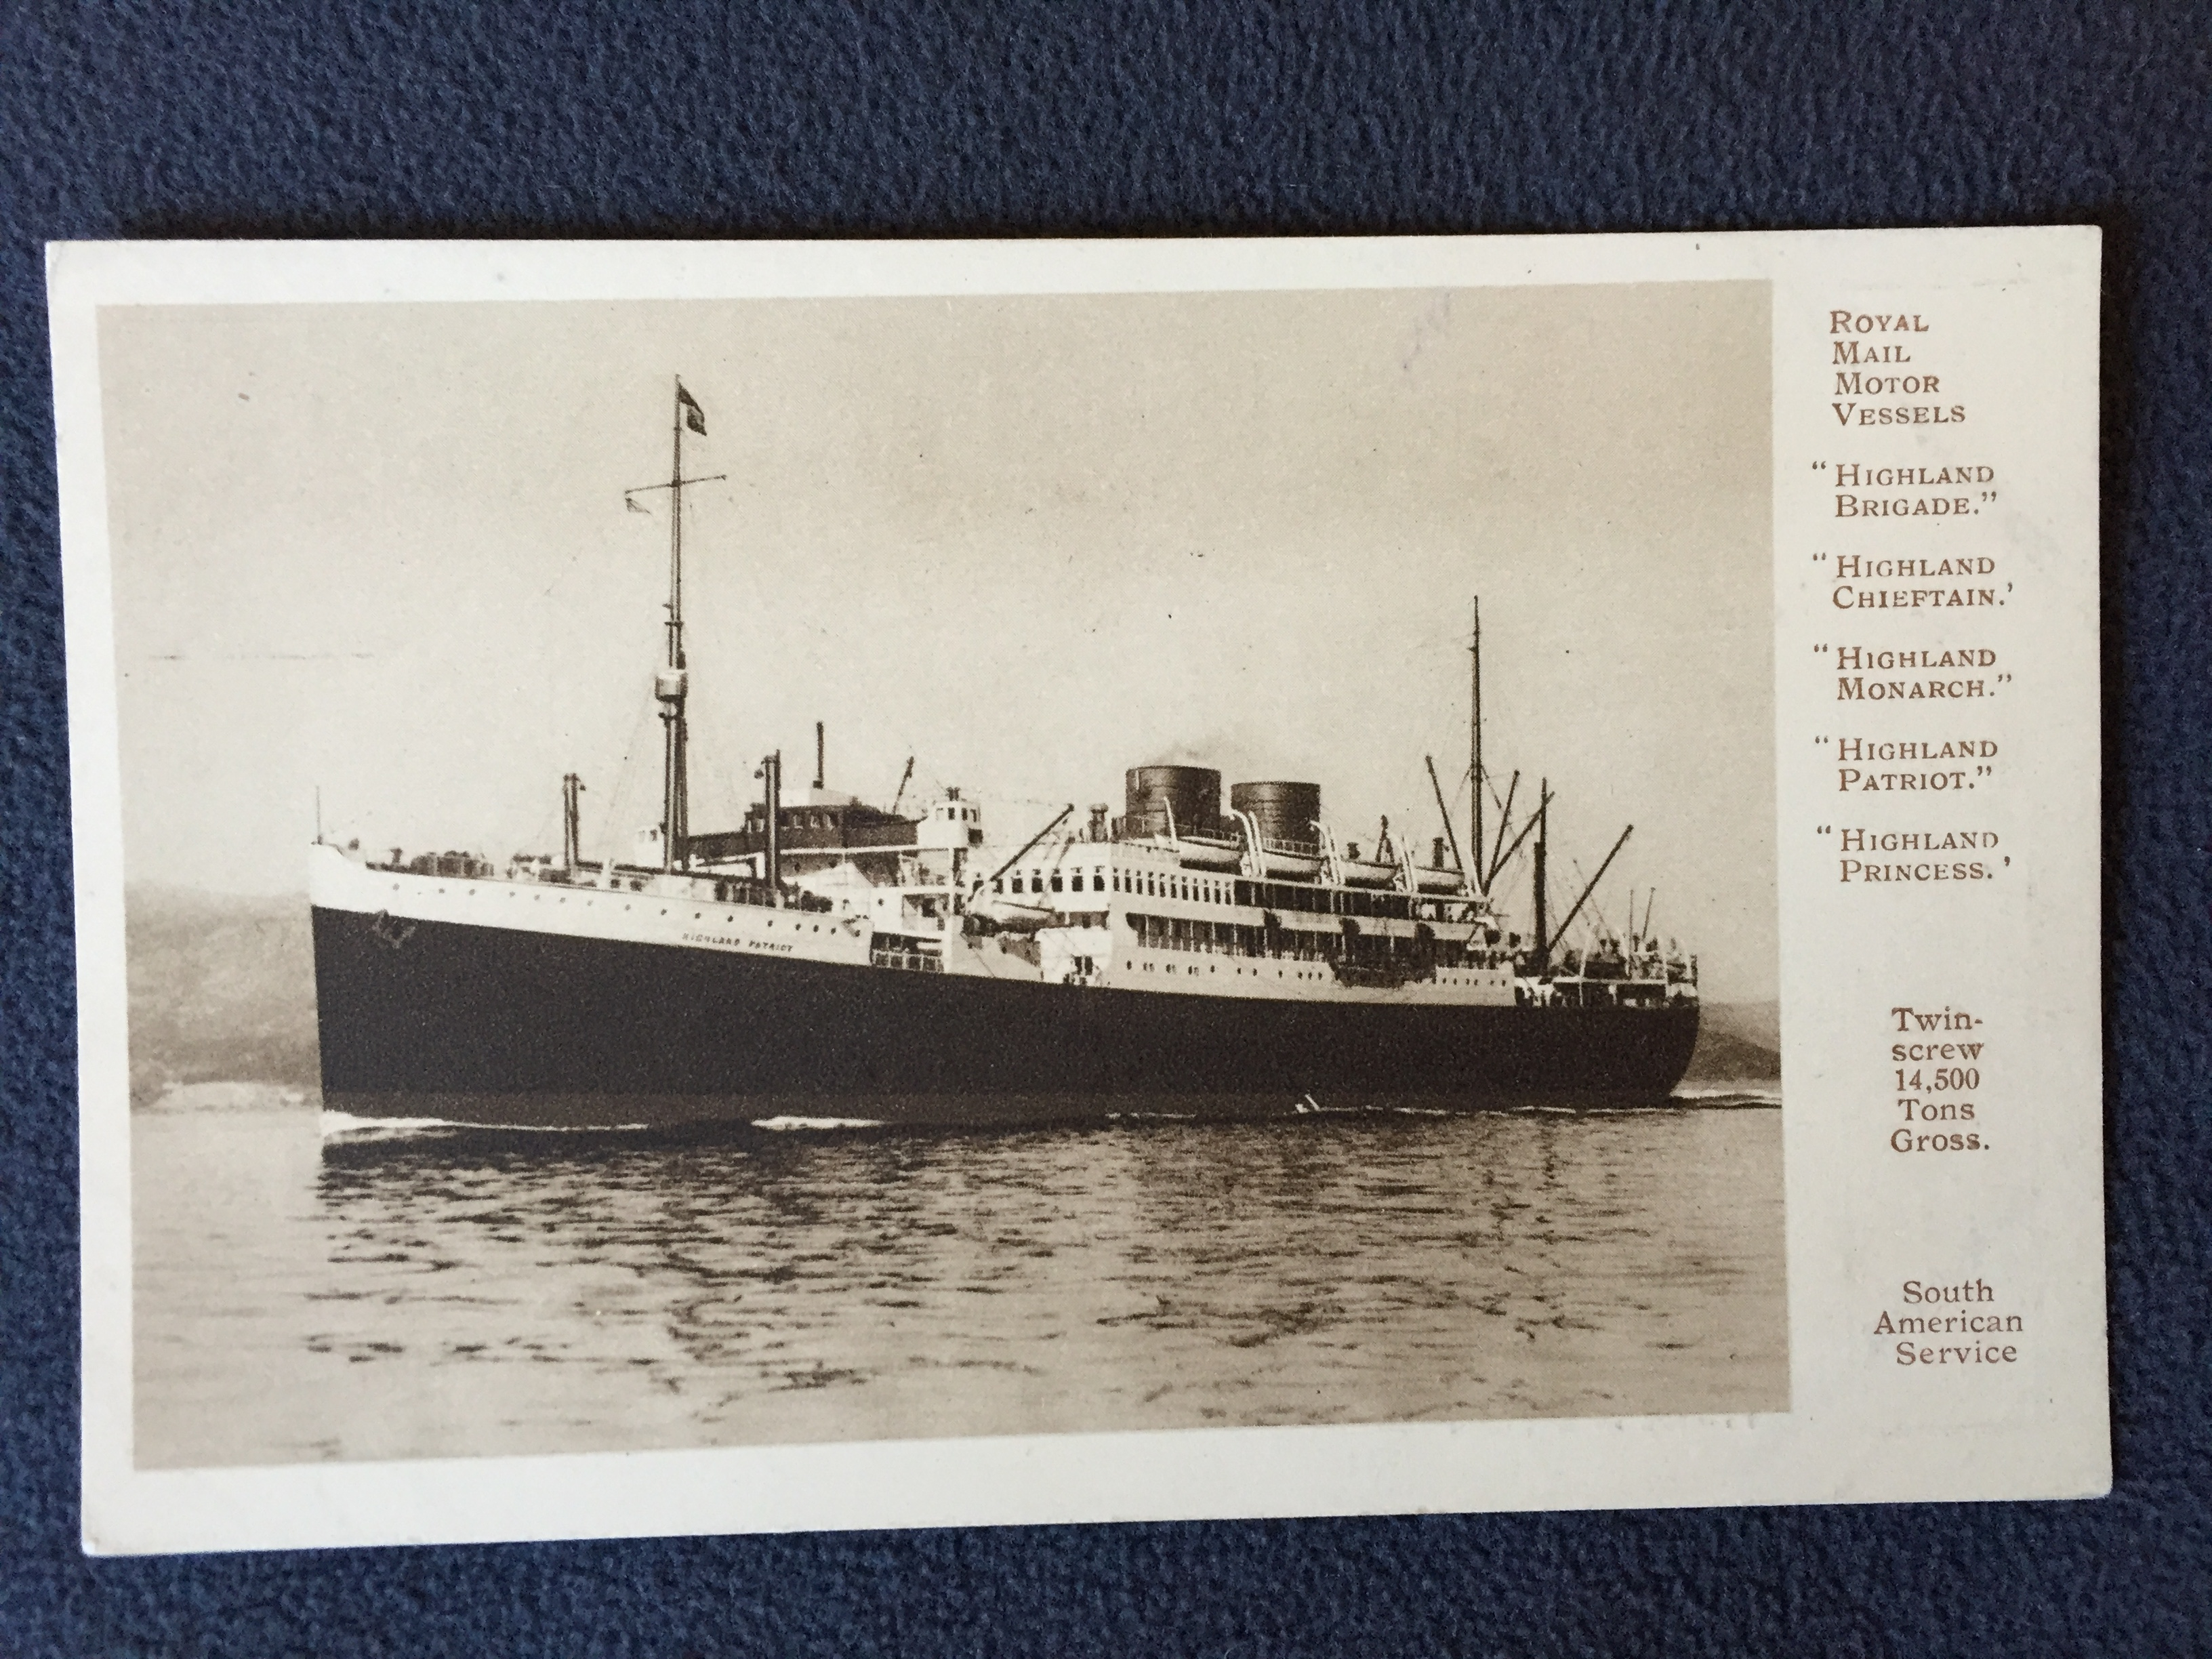 B/W UNUSED POSTCARD OF THE HIGHLAND PATRIOT FROM THE ROYAL MAIL LINE